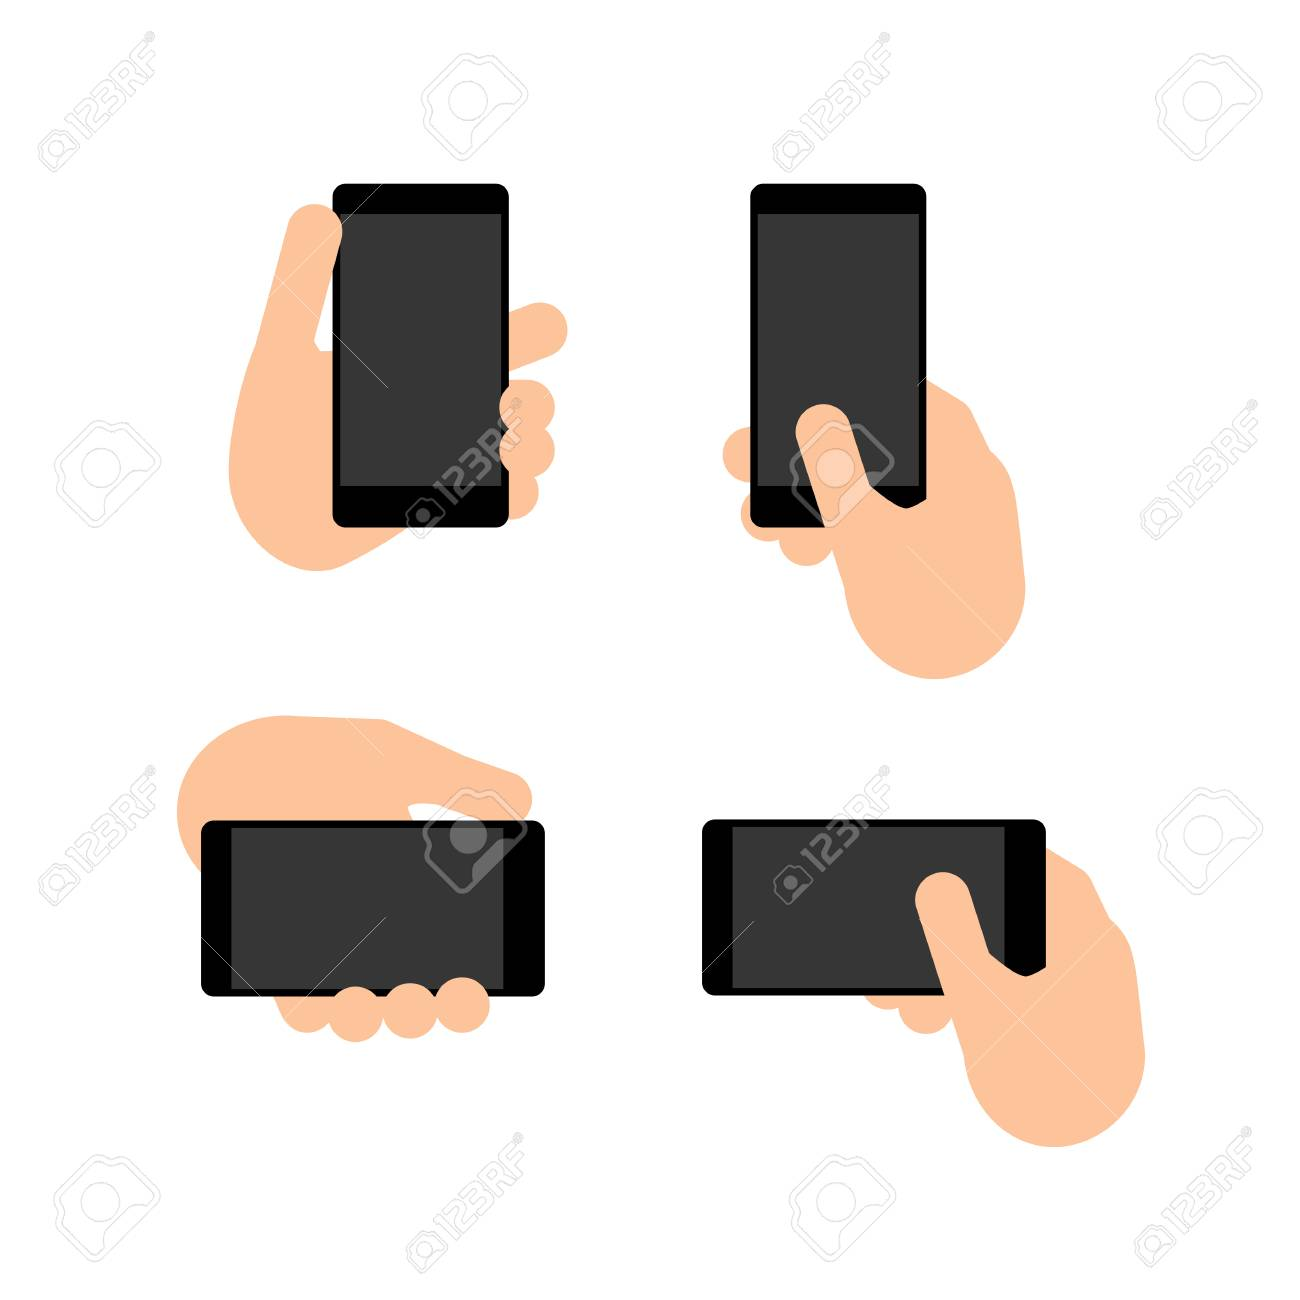 hand holds a smart phone in vertical and horizontal position